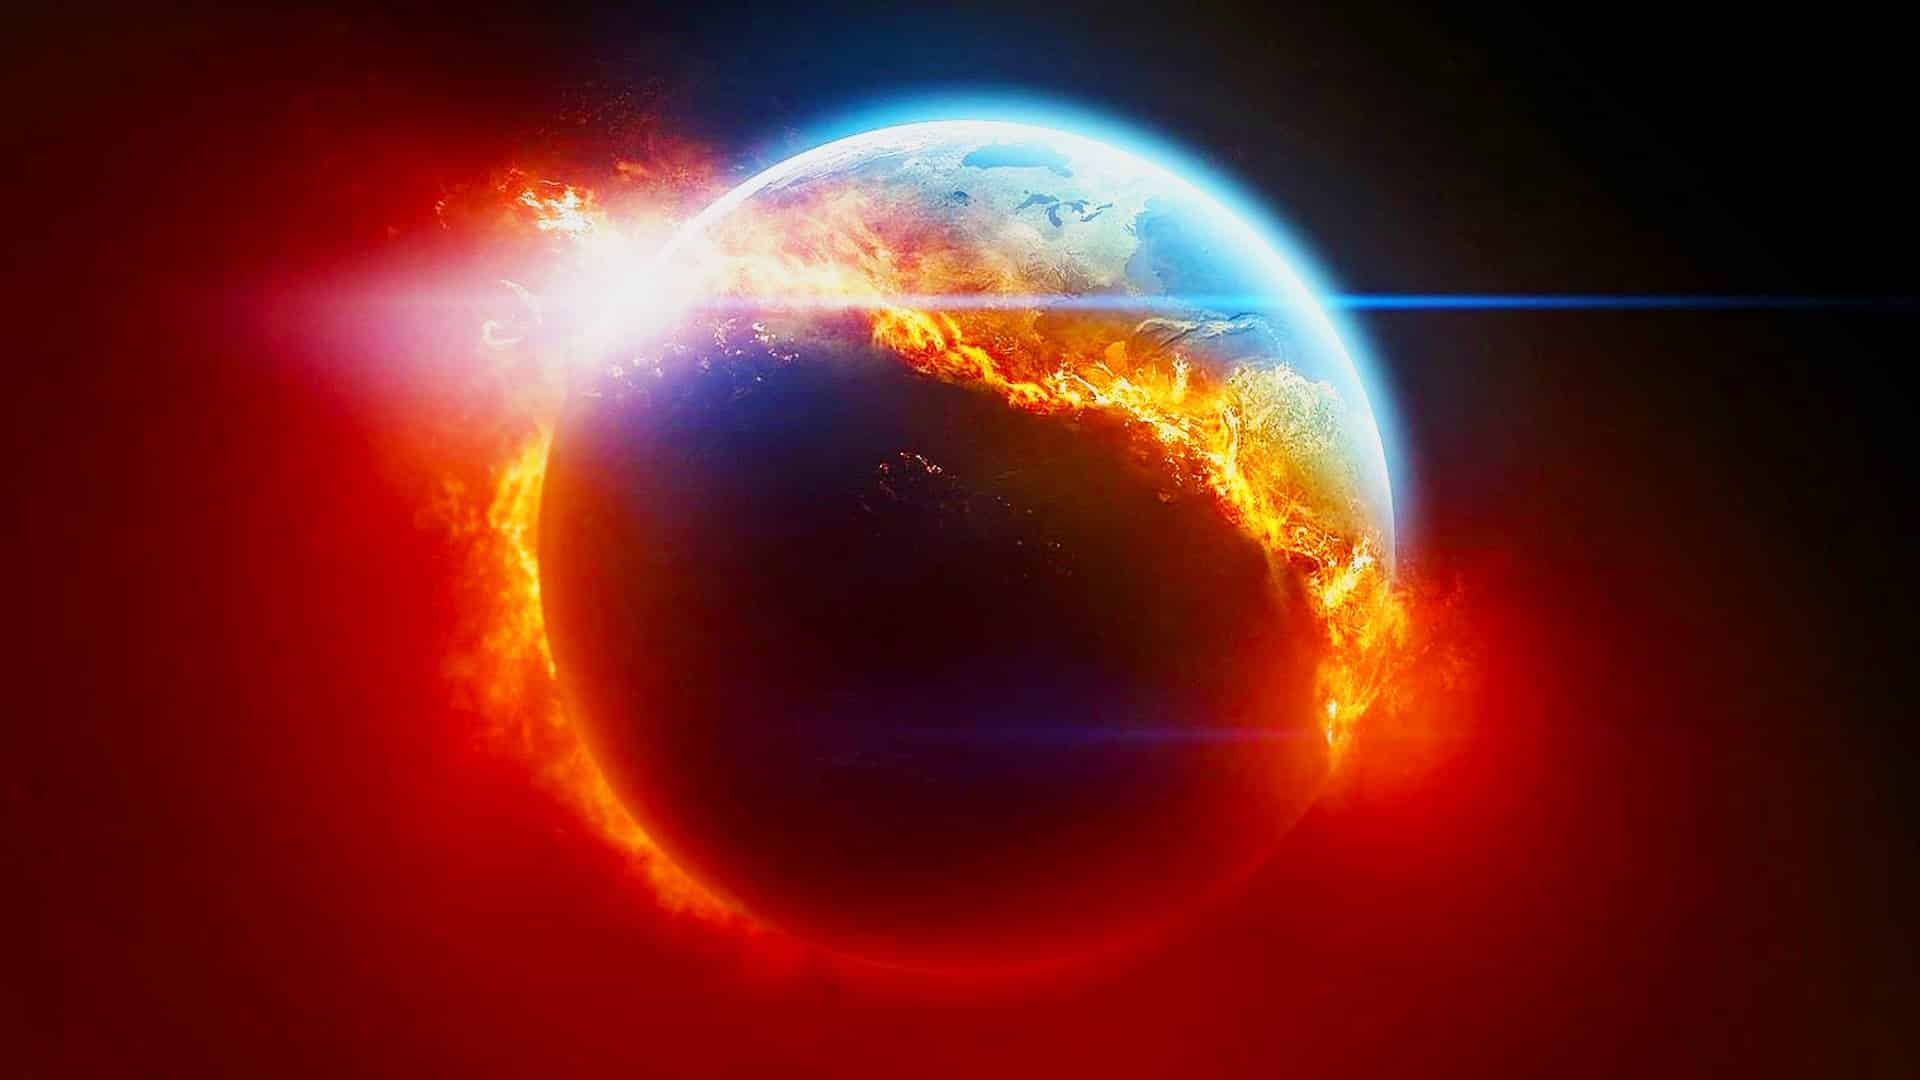 Doomsday nearing climate change assessment shows for Global shows